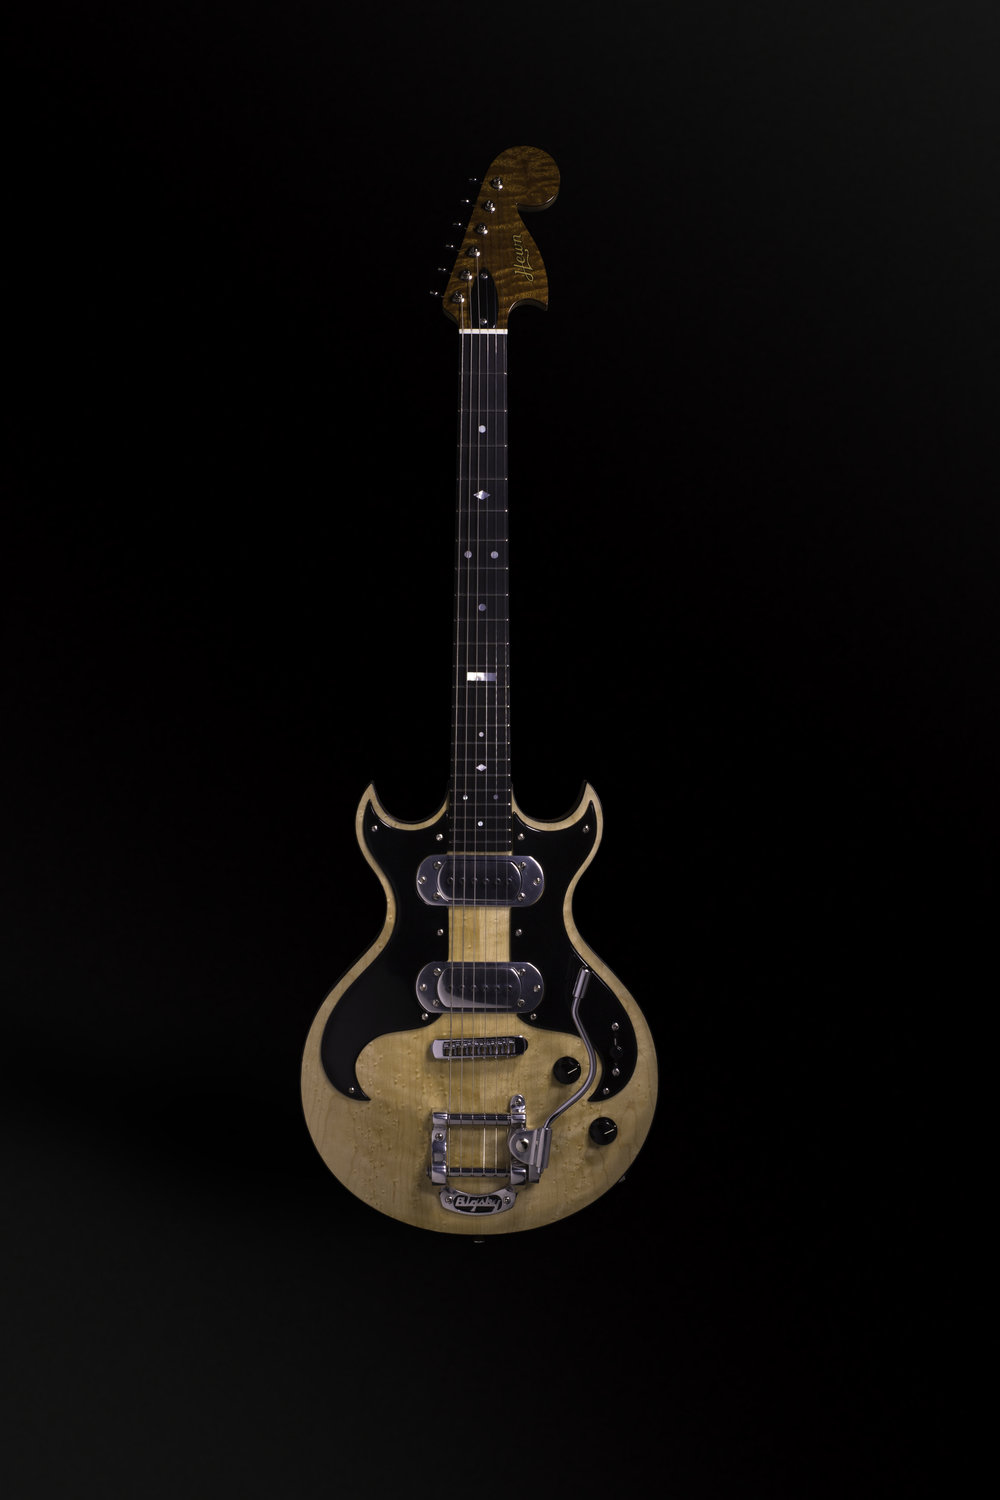 002_Bigsby_straight_front.jpg